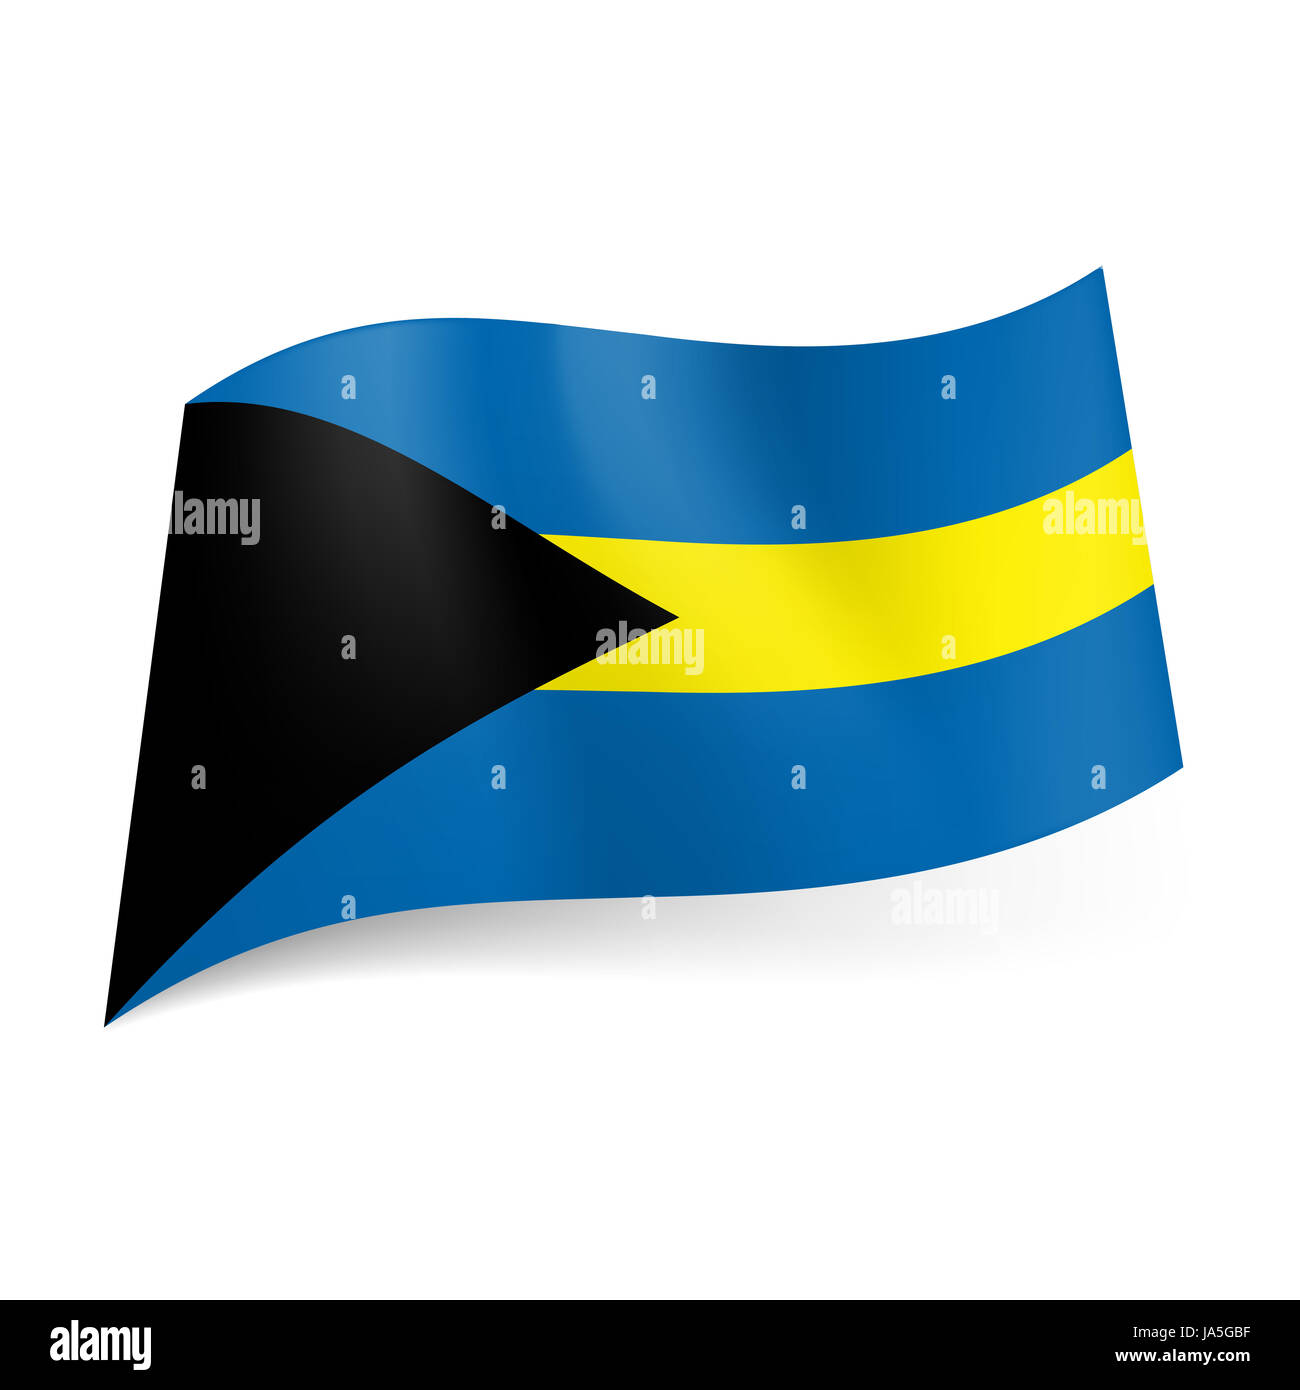 National flag of bahamas blue and yellow horizontal stripes with national flag of bahamas blue and yellow horizontal stripes with black triangle on the left biocorpaavc Image collections